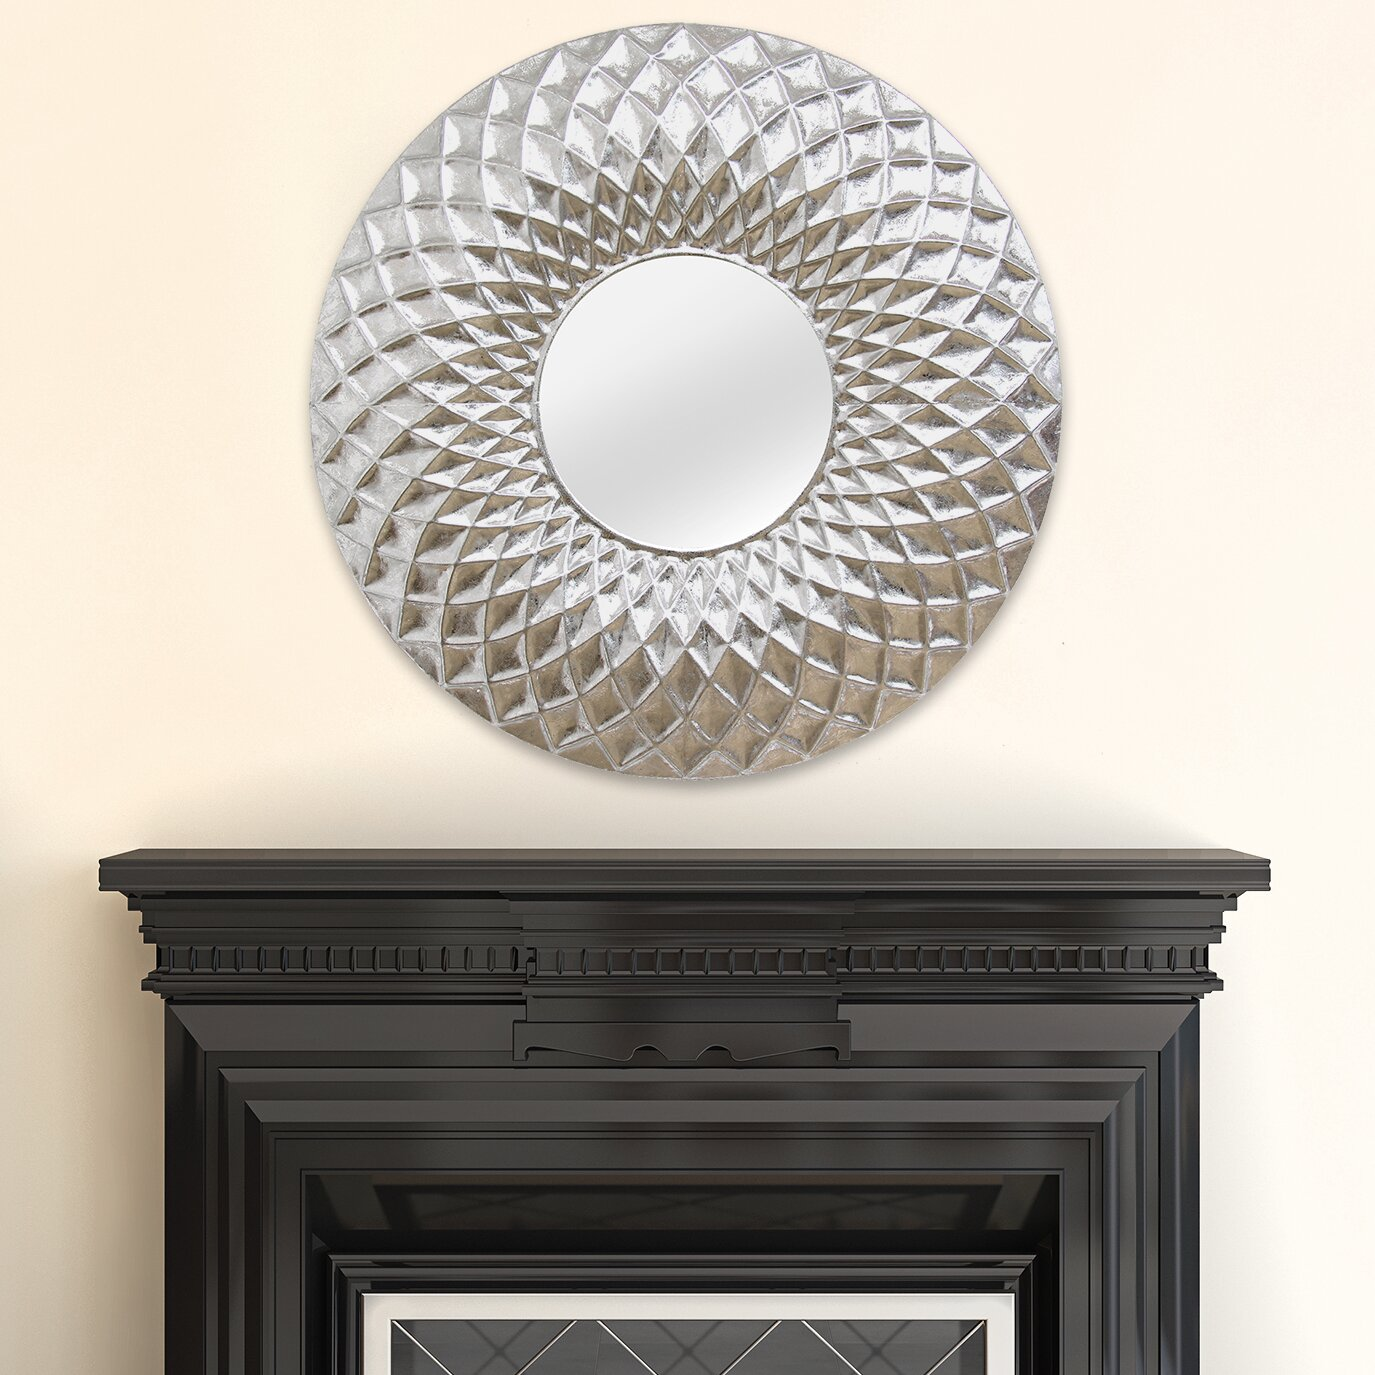 Stratton home decor sarah wall mirror reviews wayfair - Wall decor mirror home accents ...